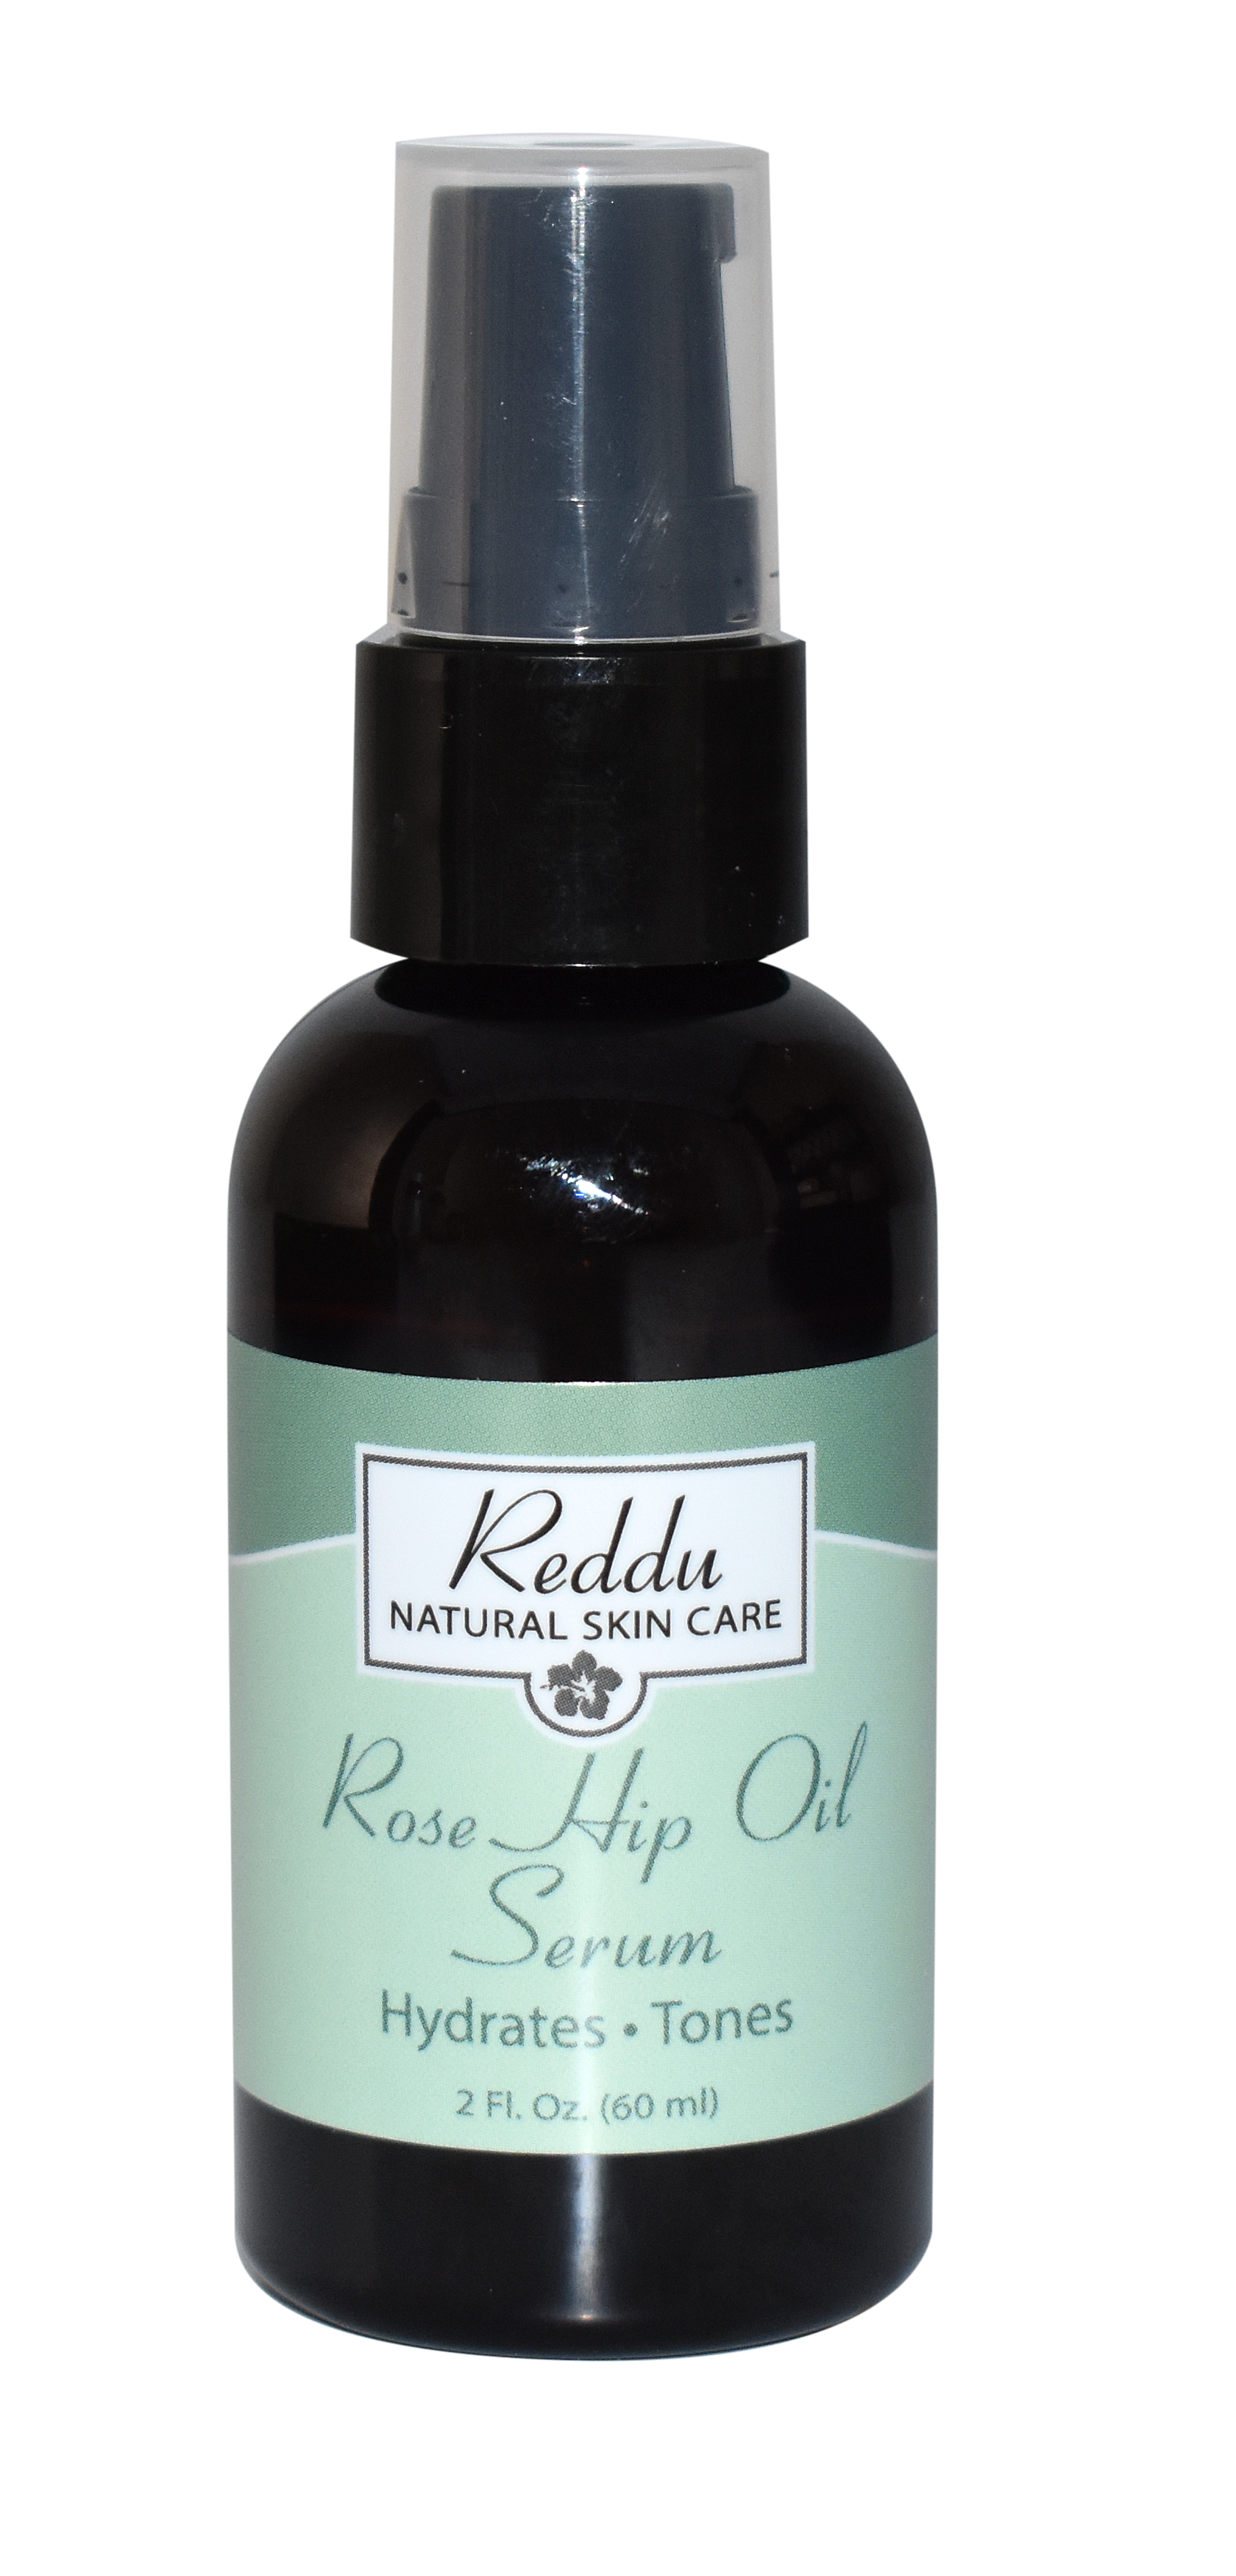 Reddu- Rose Hip Oil Serum